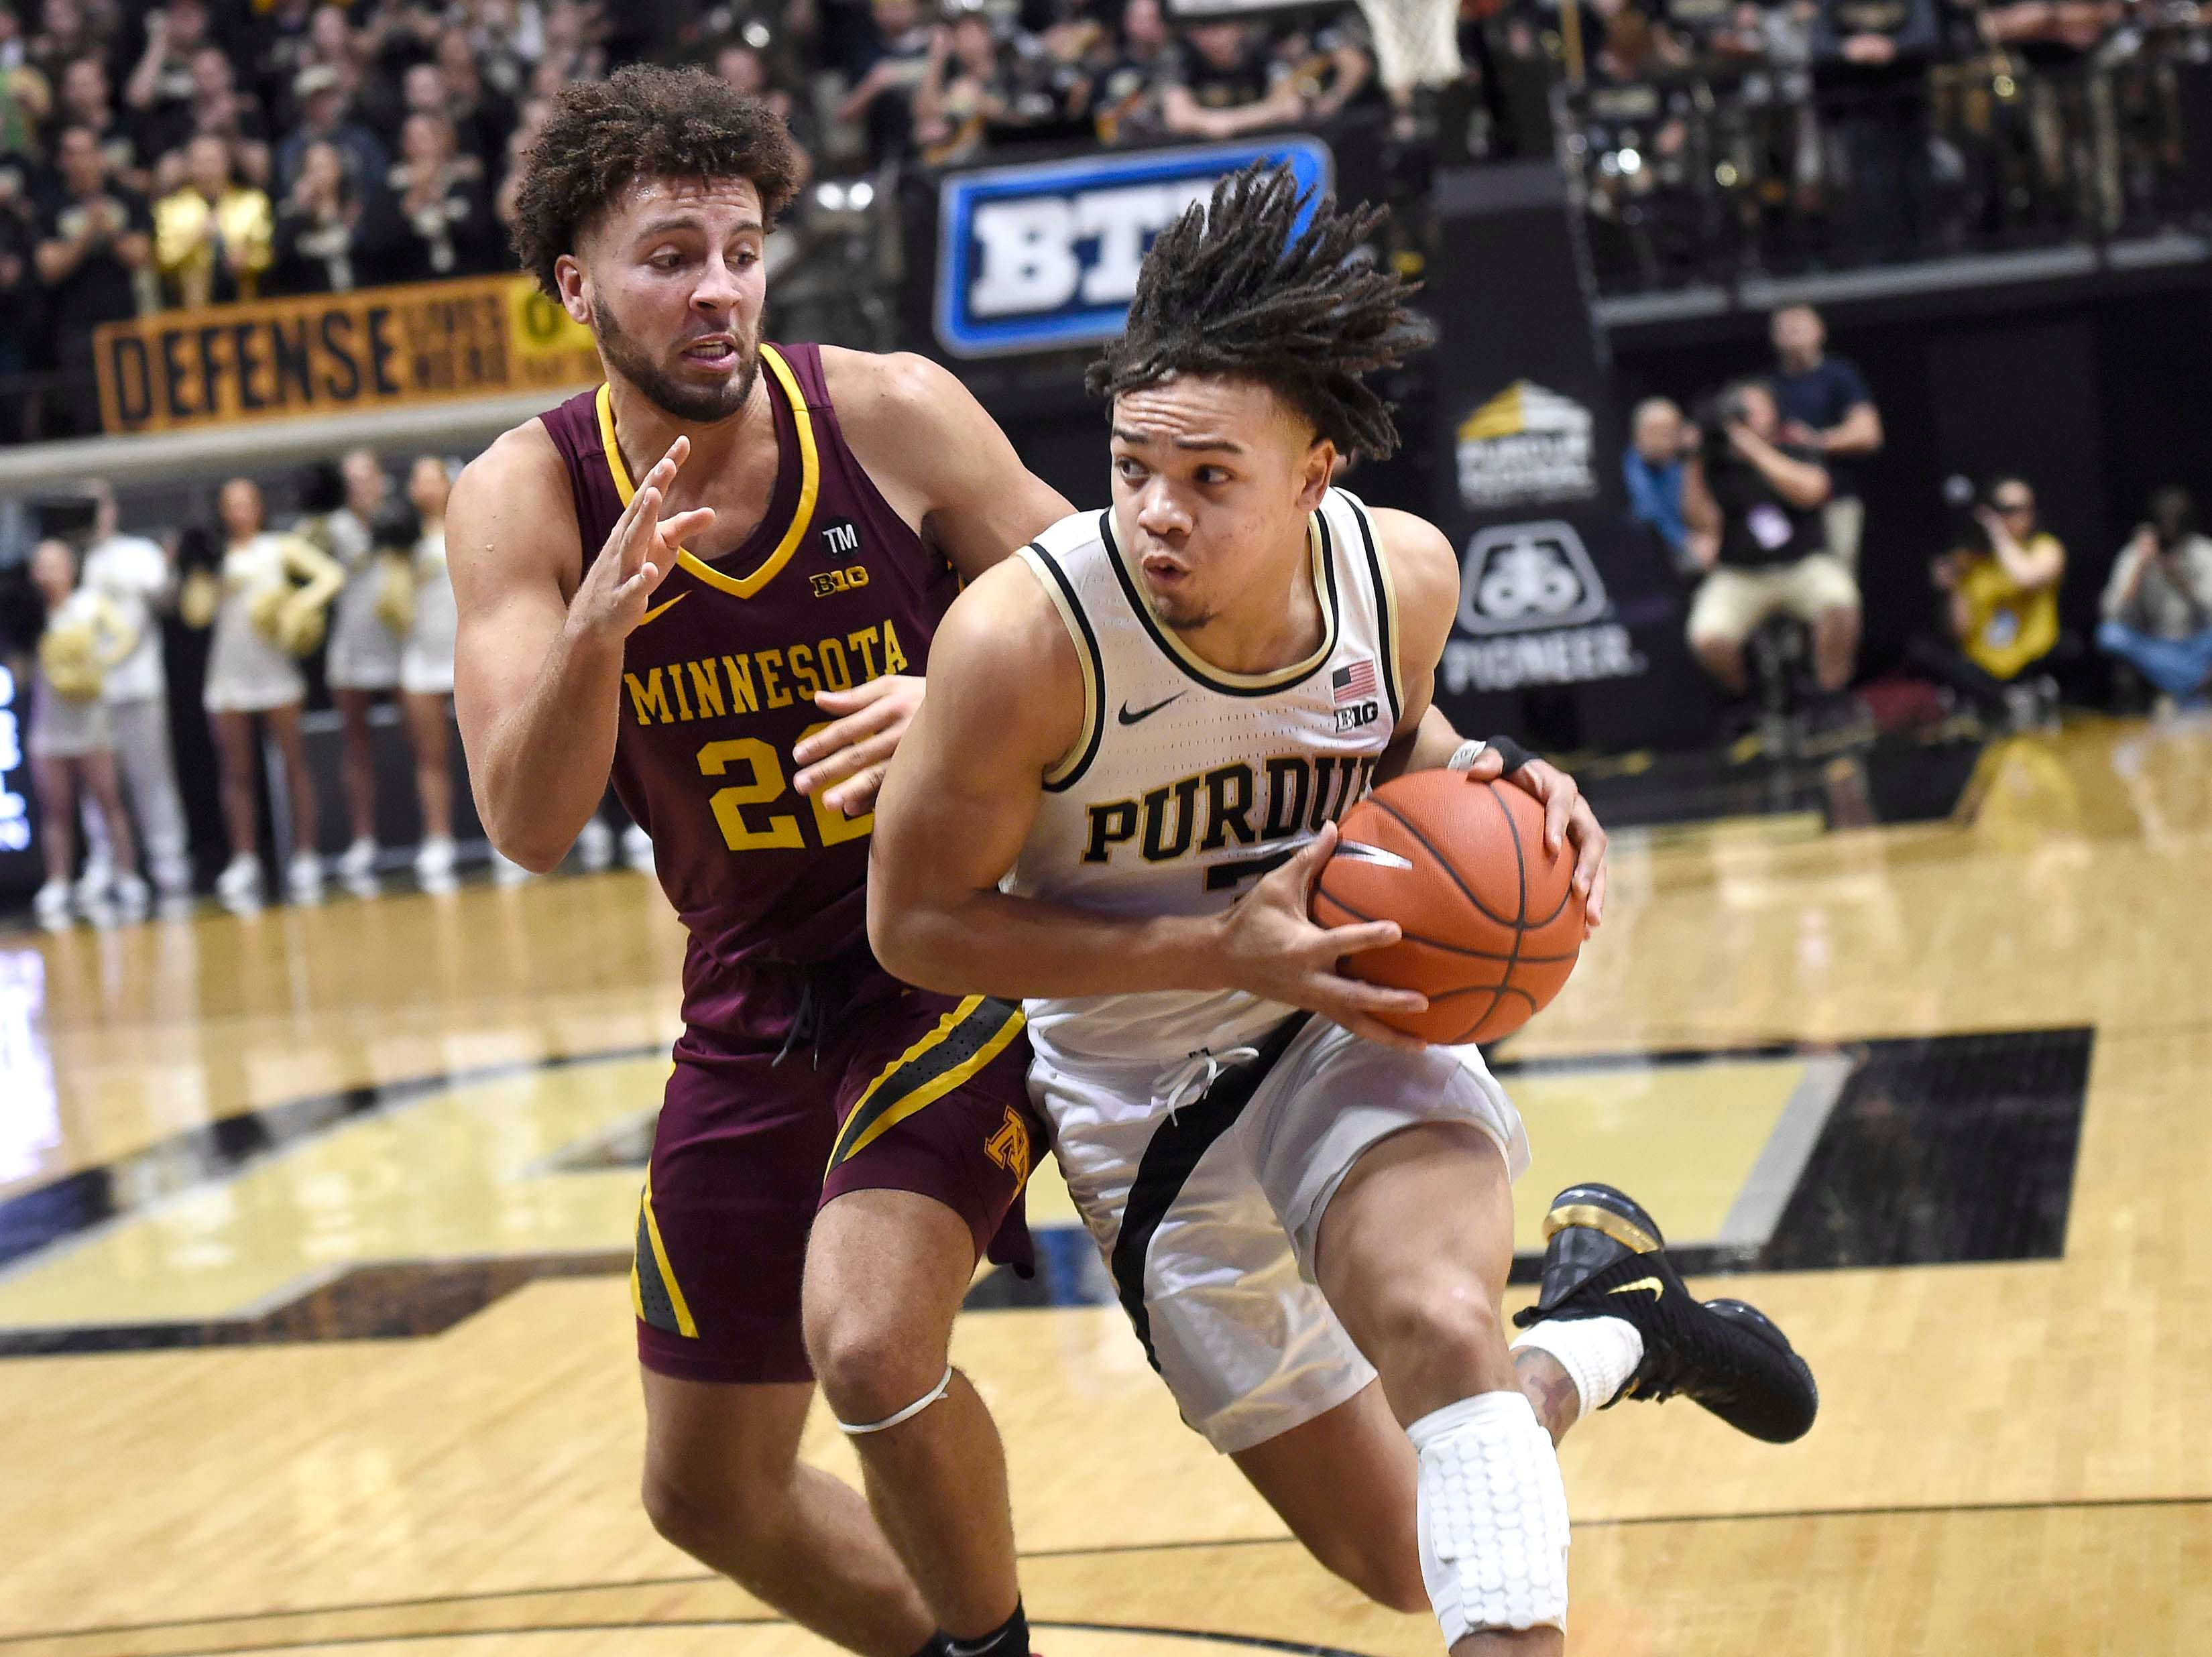 Feb 3, 2019; West Lafayette, IN, USA; Purdue Boilermakers guard Carsen Edwards (3) drives past Minnesota Golden Gophers guard Gabe Kalscheur (22) in the 2nd half at Mackey Arena. Mandatory Credit: Sandra Dukes-USA TODAY Sports